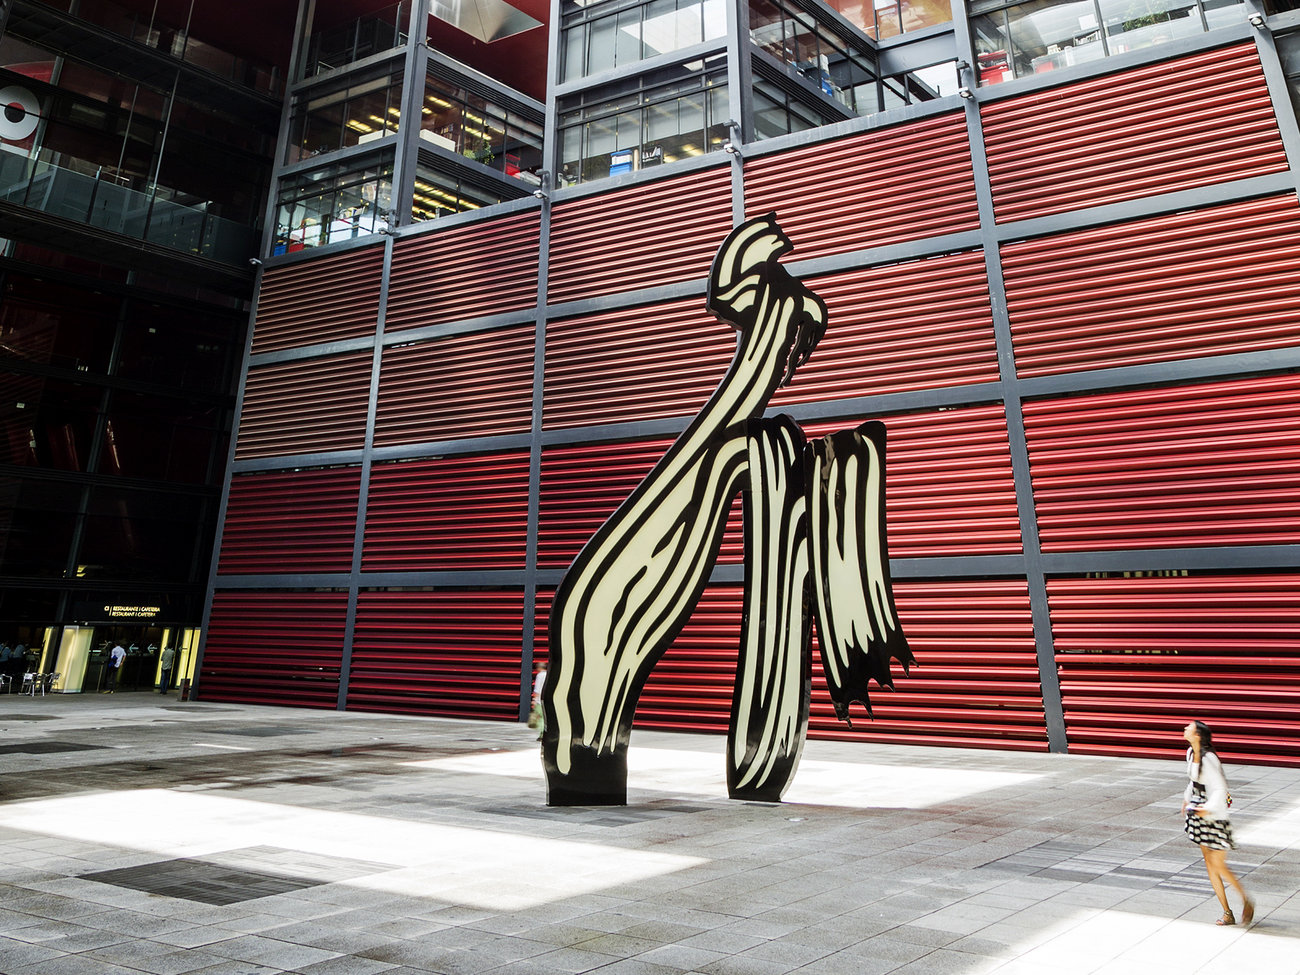 Museo Reina Sofia Museum in Madrid